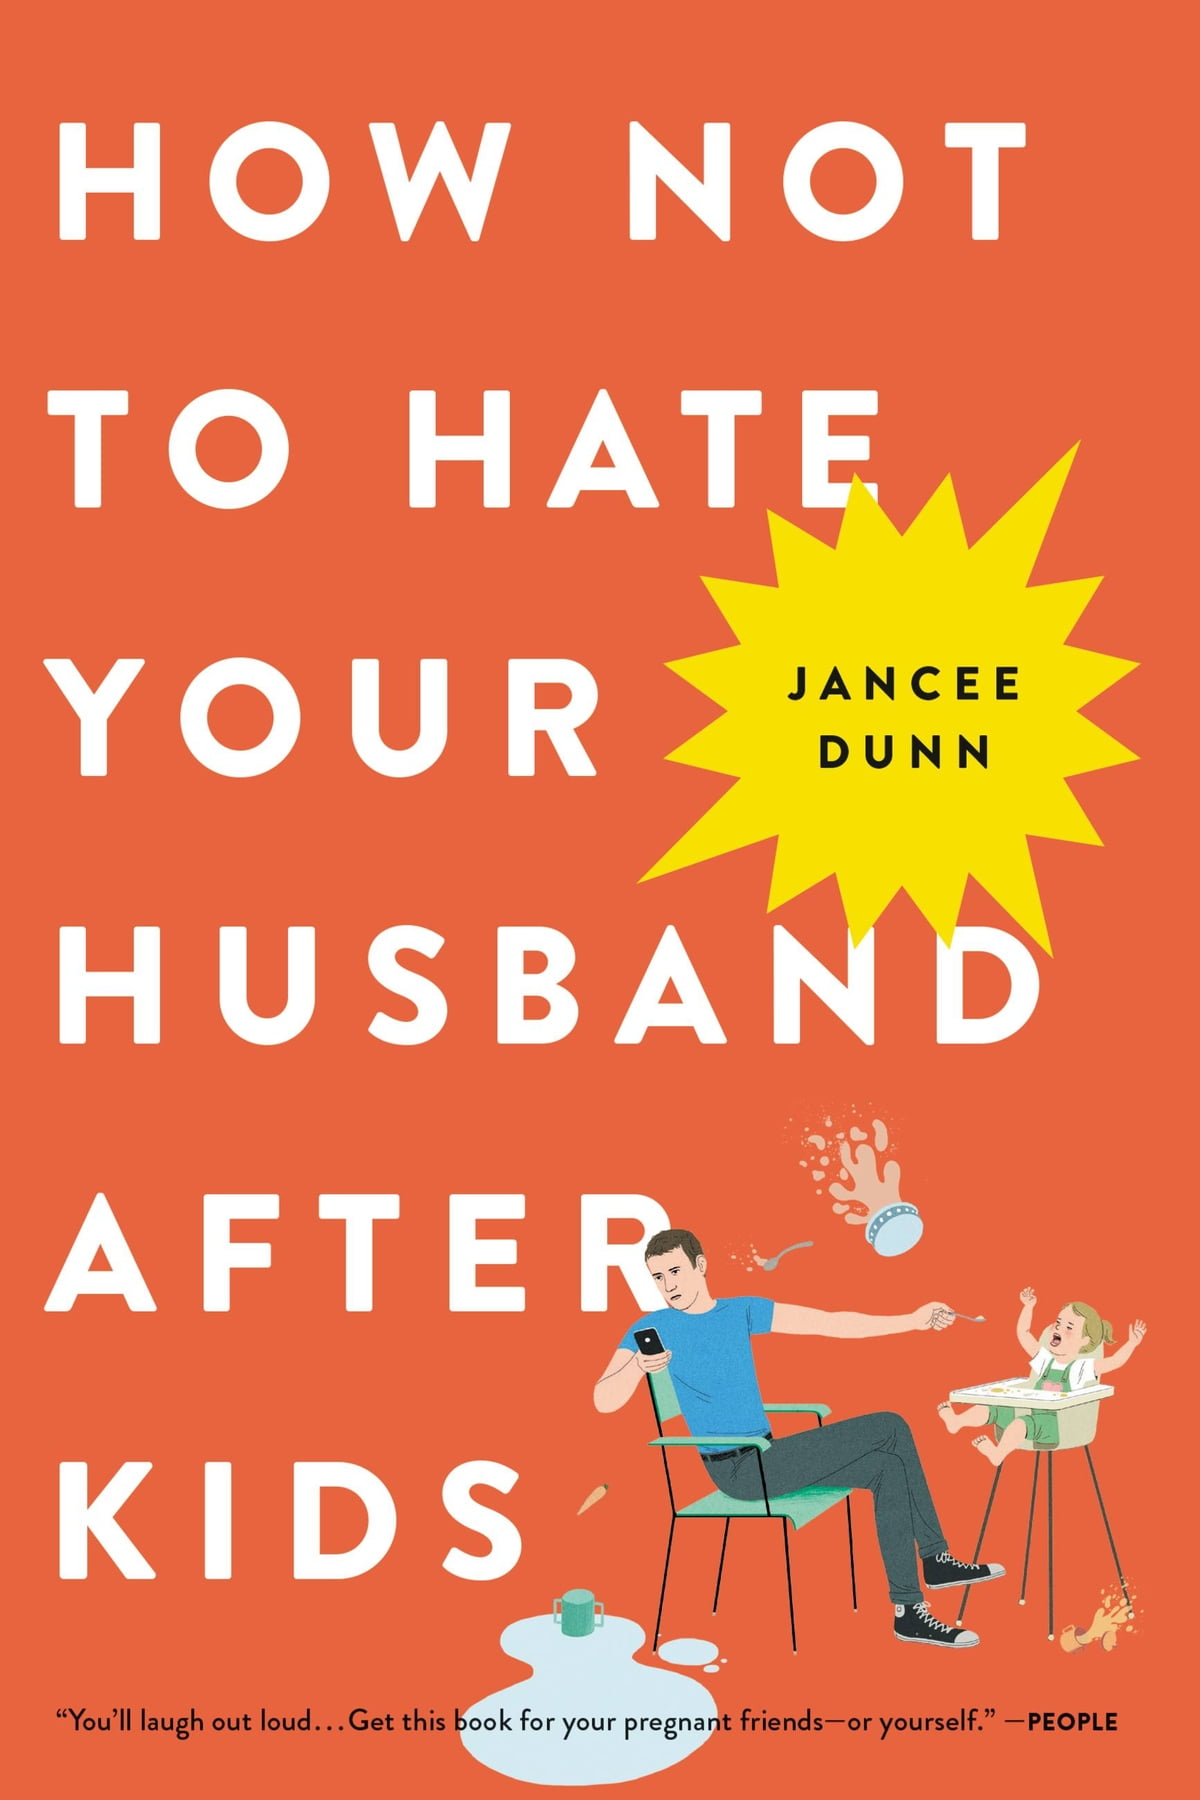 How Not to Hate Your Husband After You Have Kids picture